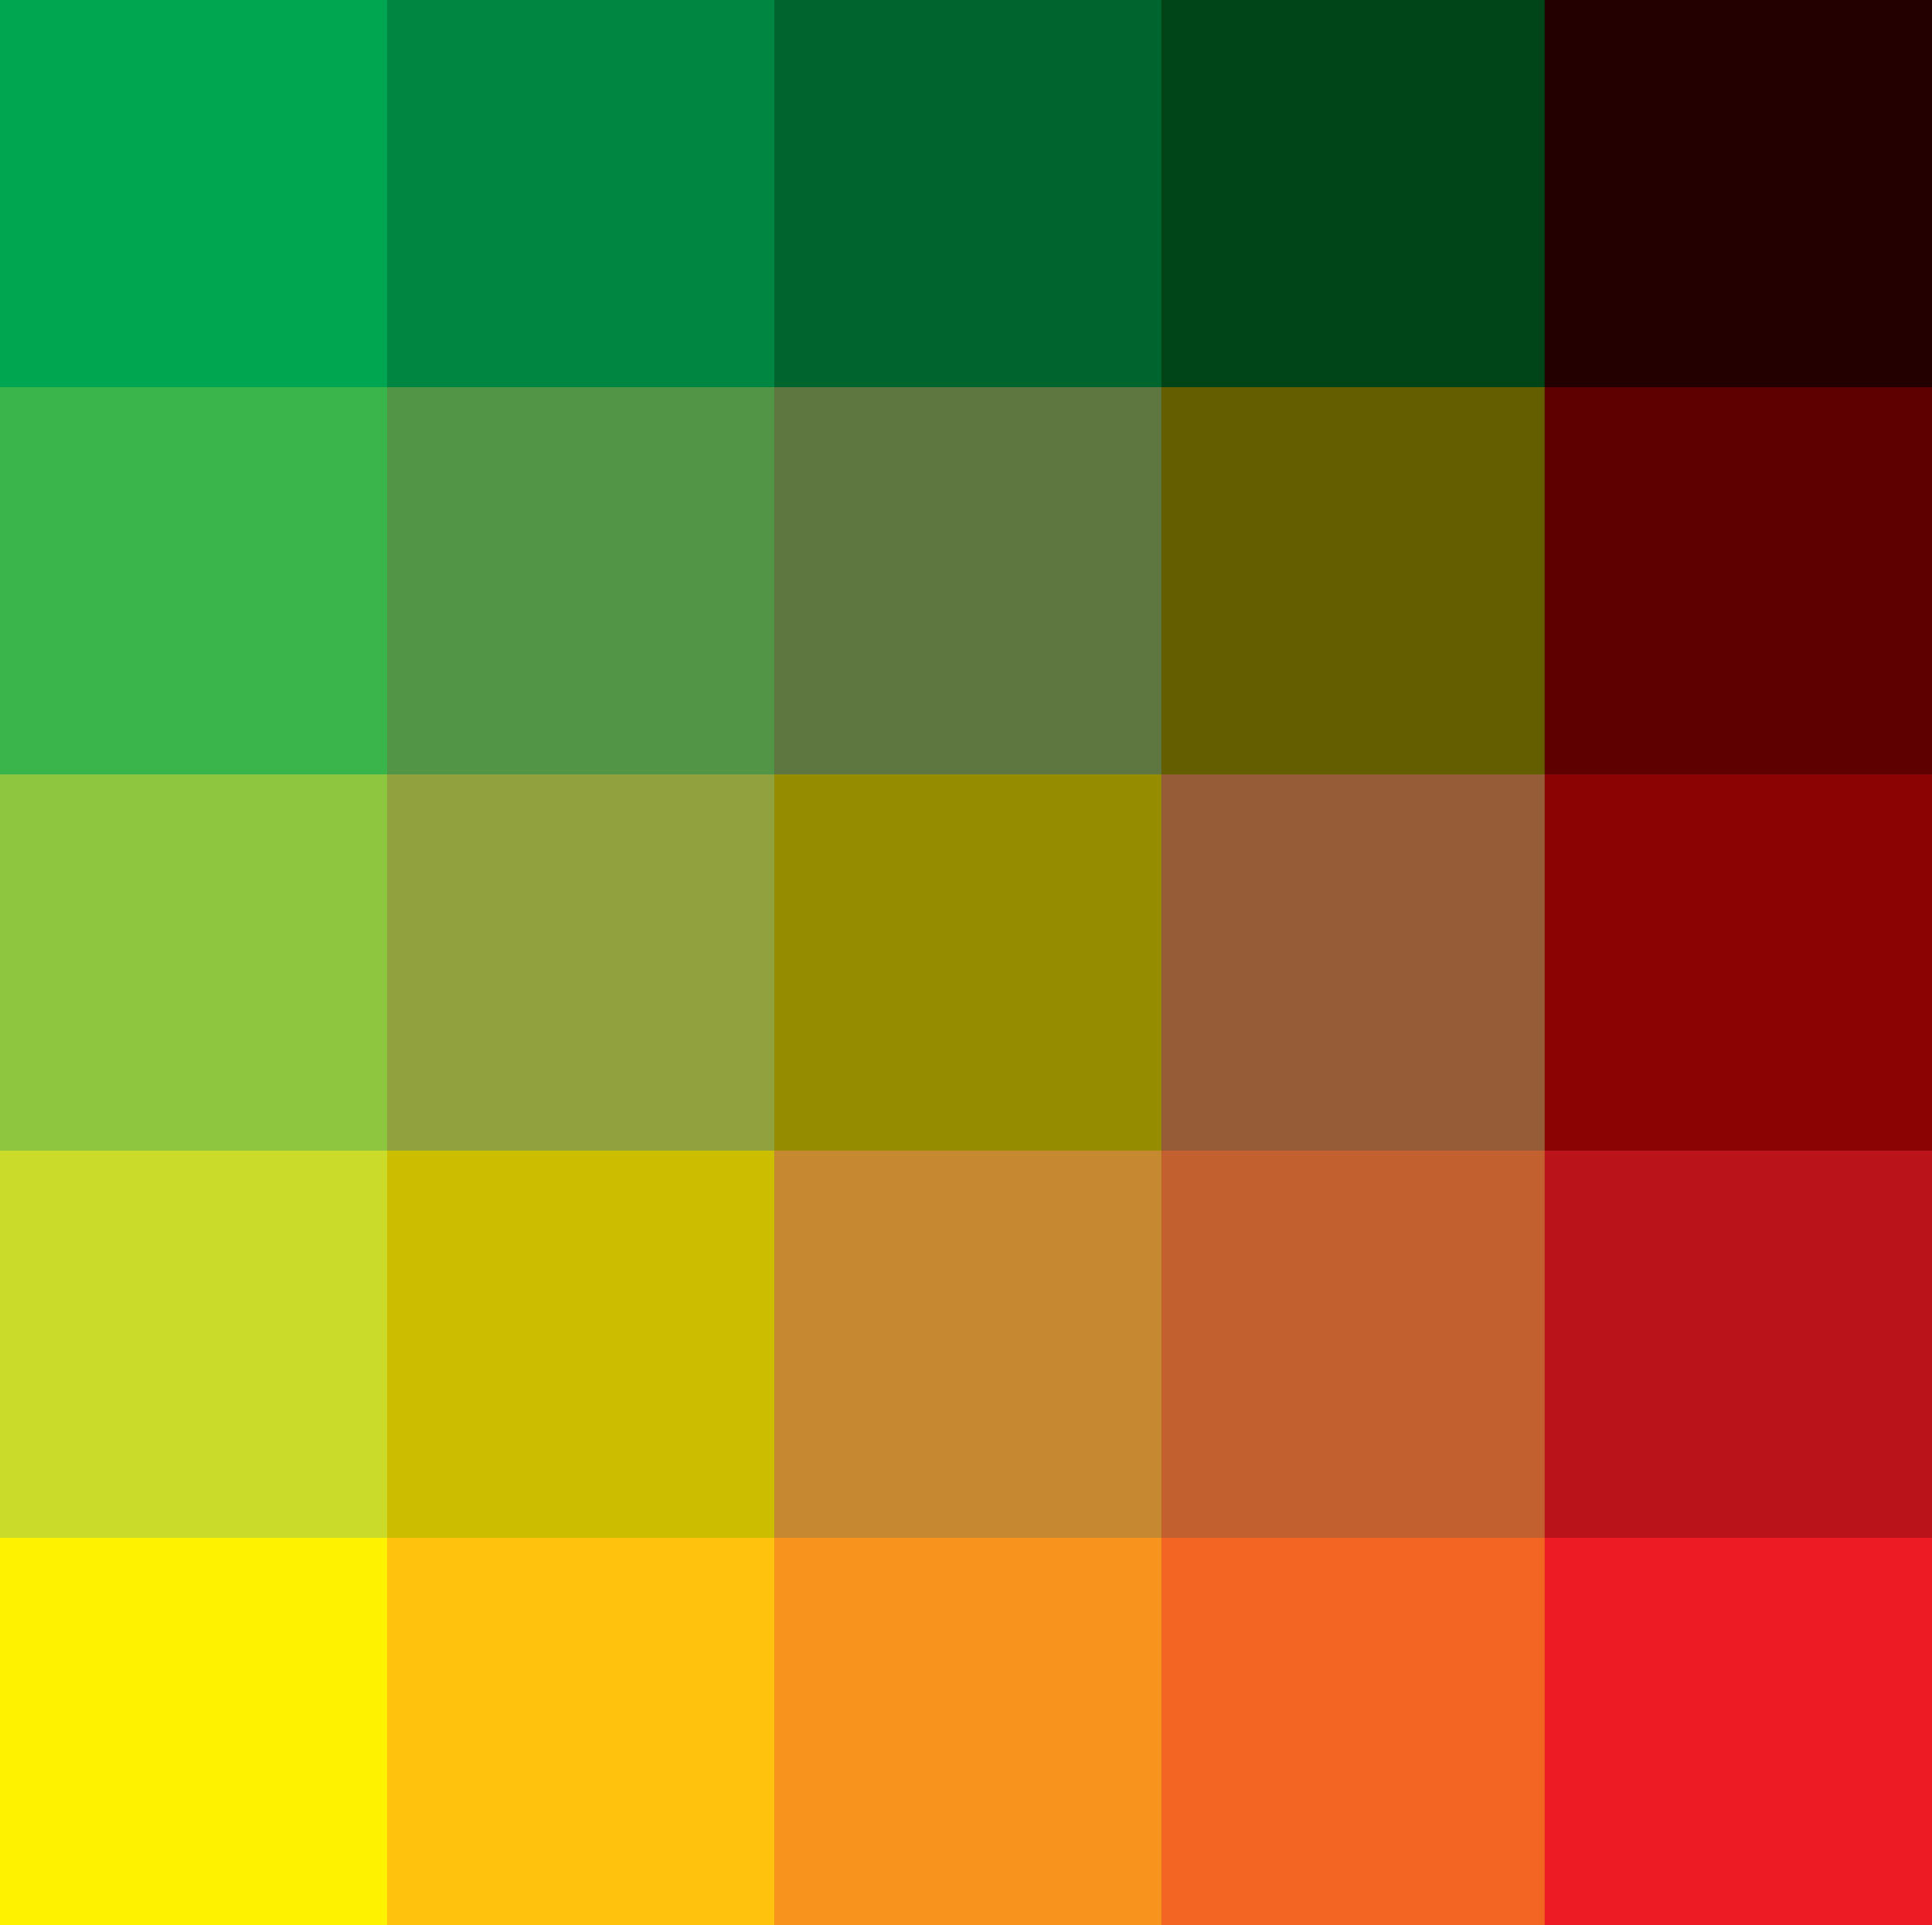 Red + Green = Yellow- Understanding color with How Art Works